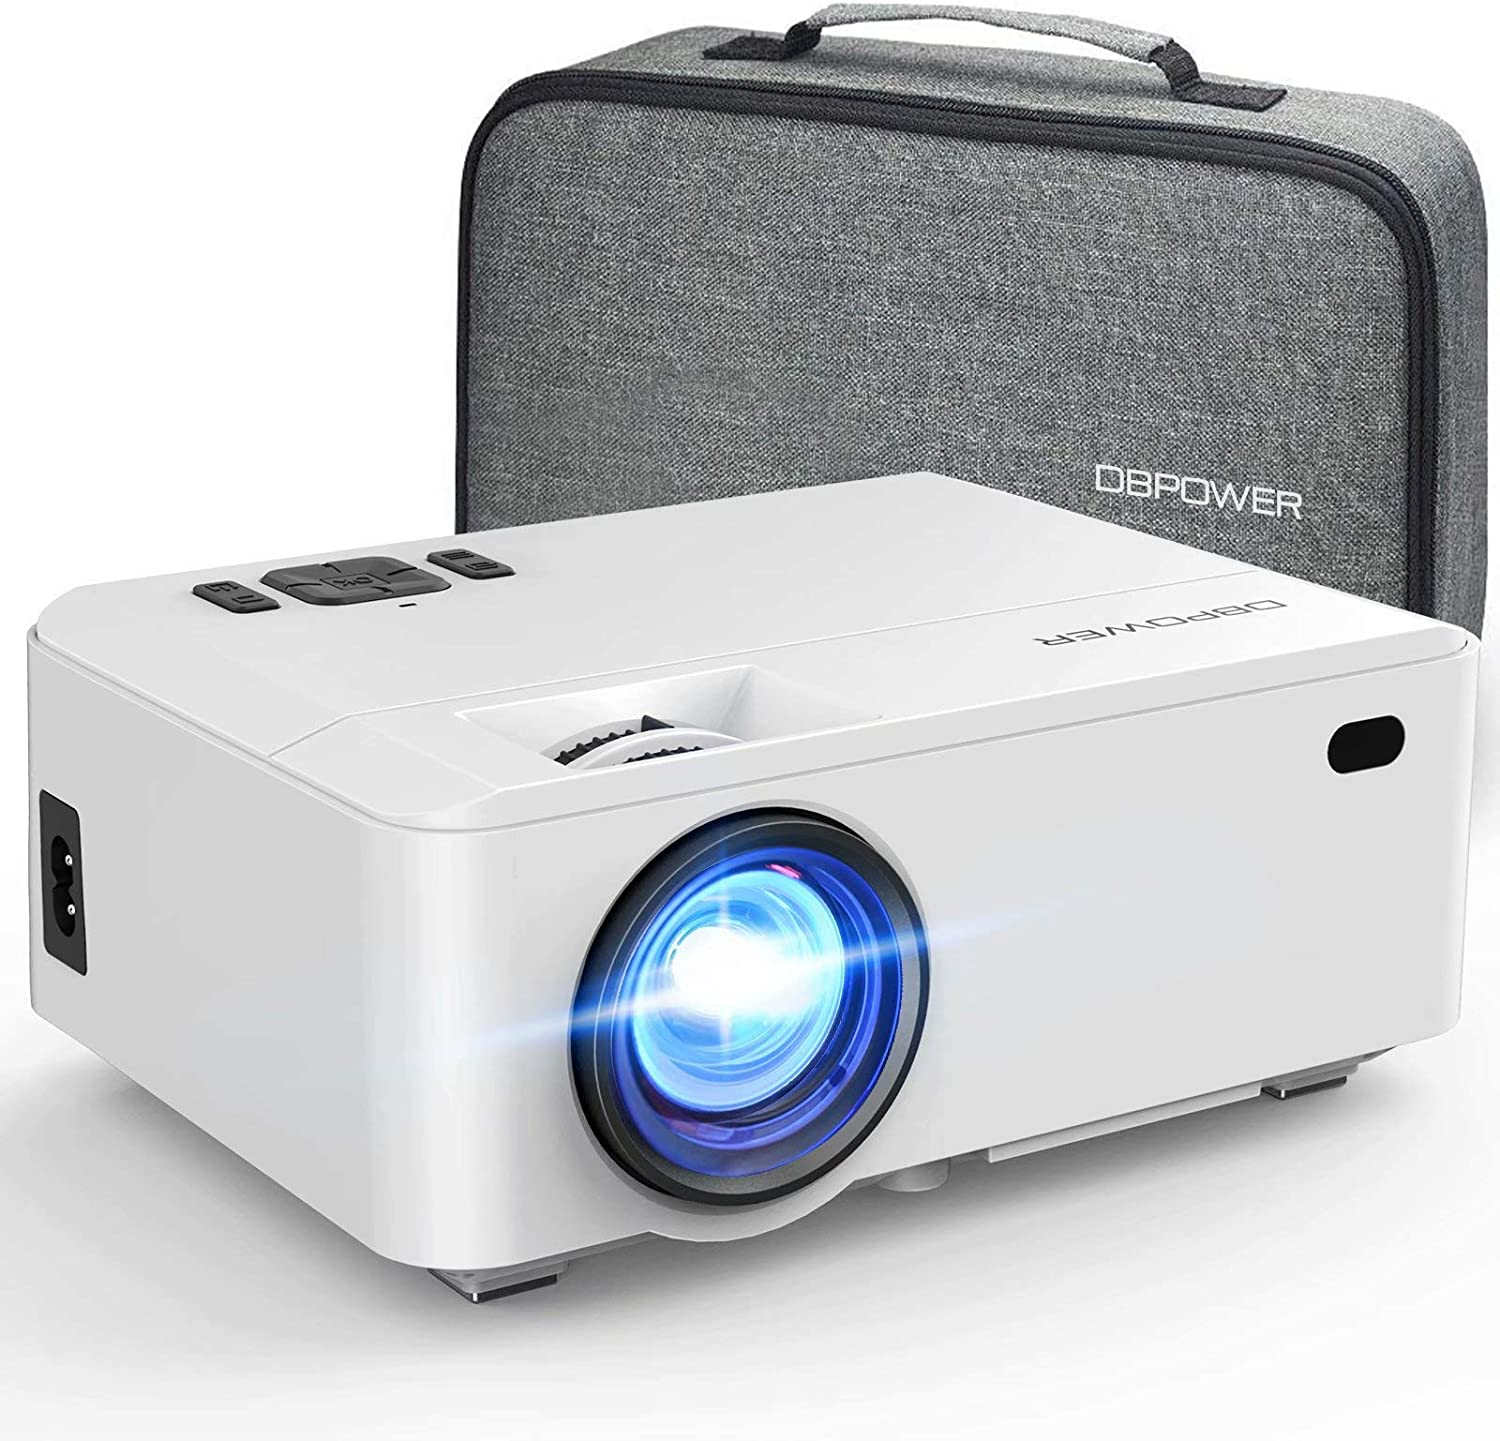 Projector, DBPOWER RD-820 Video Mini Projector Portable with Carrying Case, 5500L Full HD 1080P and 200'' Display Supported, Video Projector Compatible with TV Stick, PS4, HDMI, VGA, TF, AV and USB